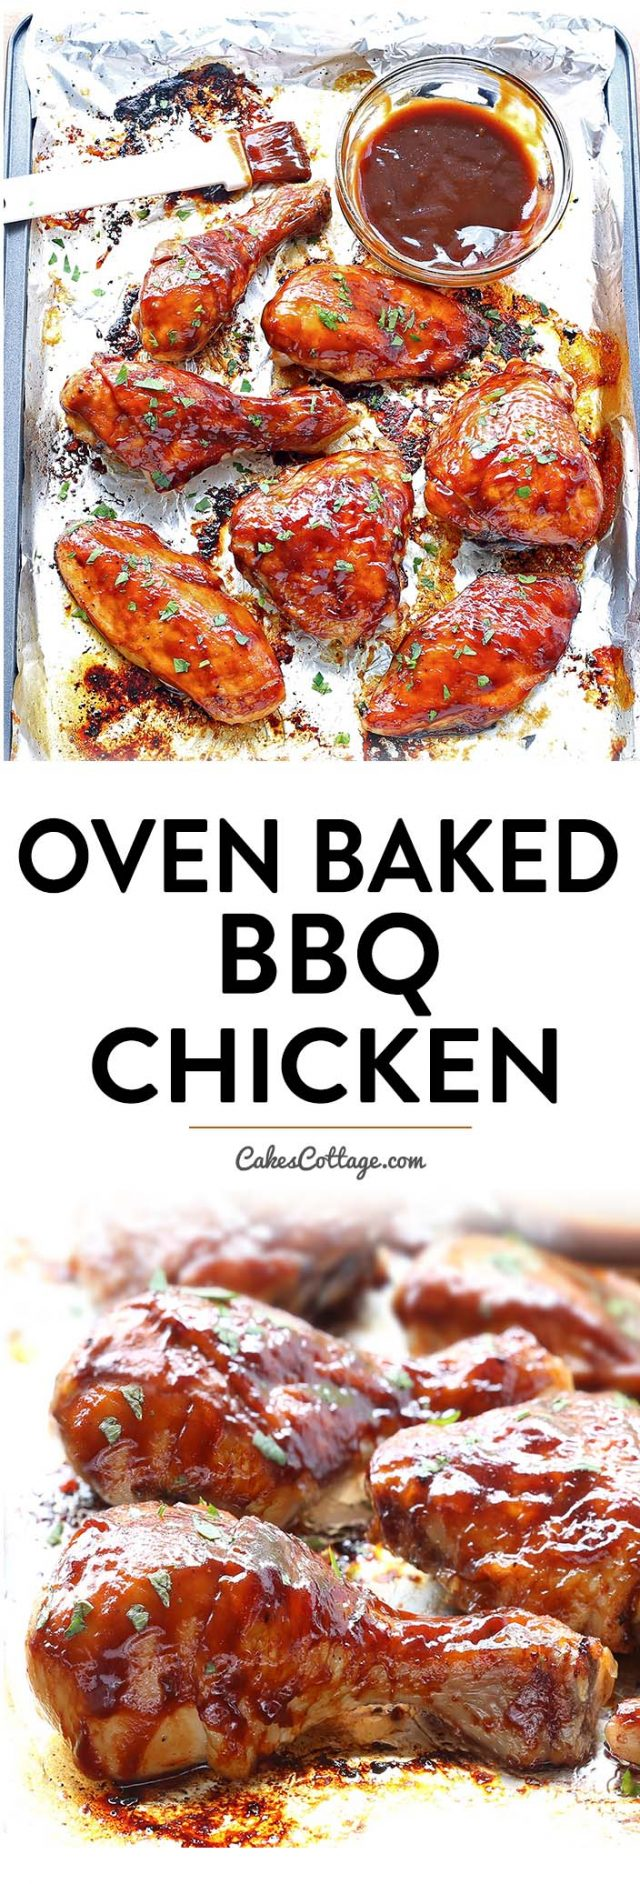 This is one of the juiciest oven baked BBQ chicken you'll ever taste.